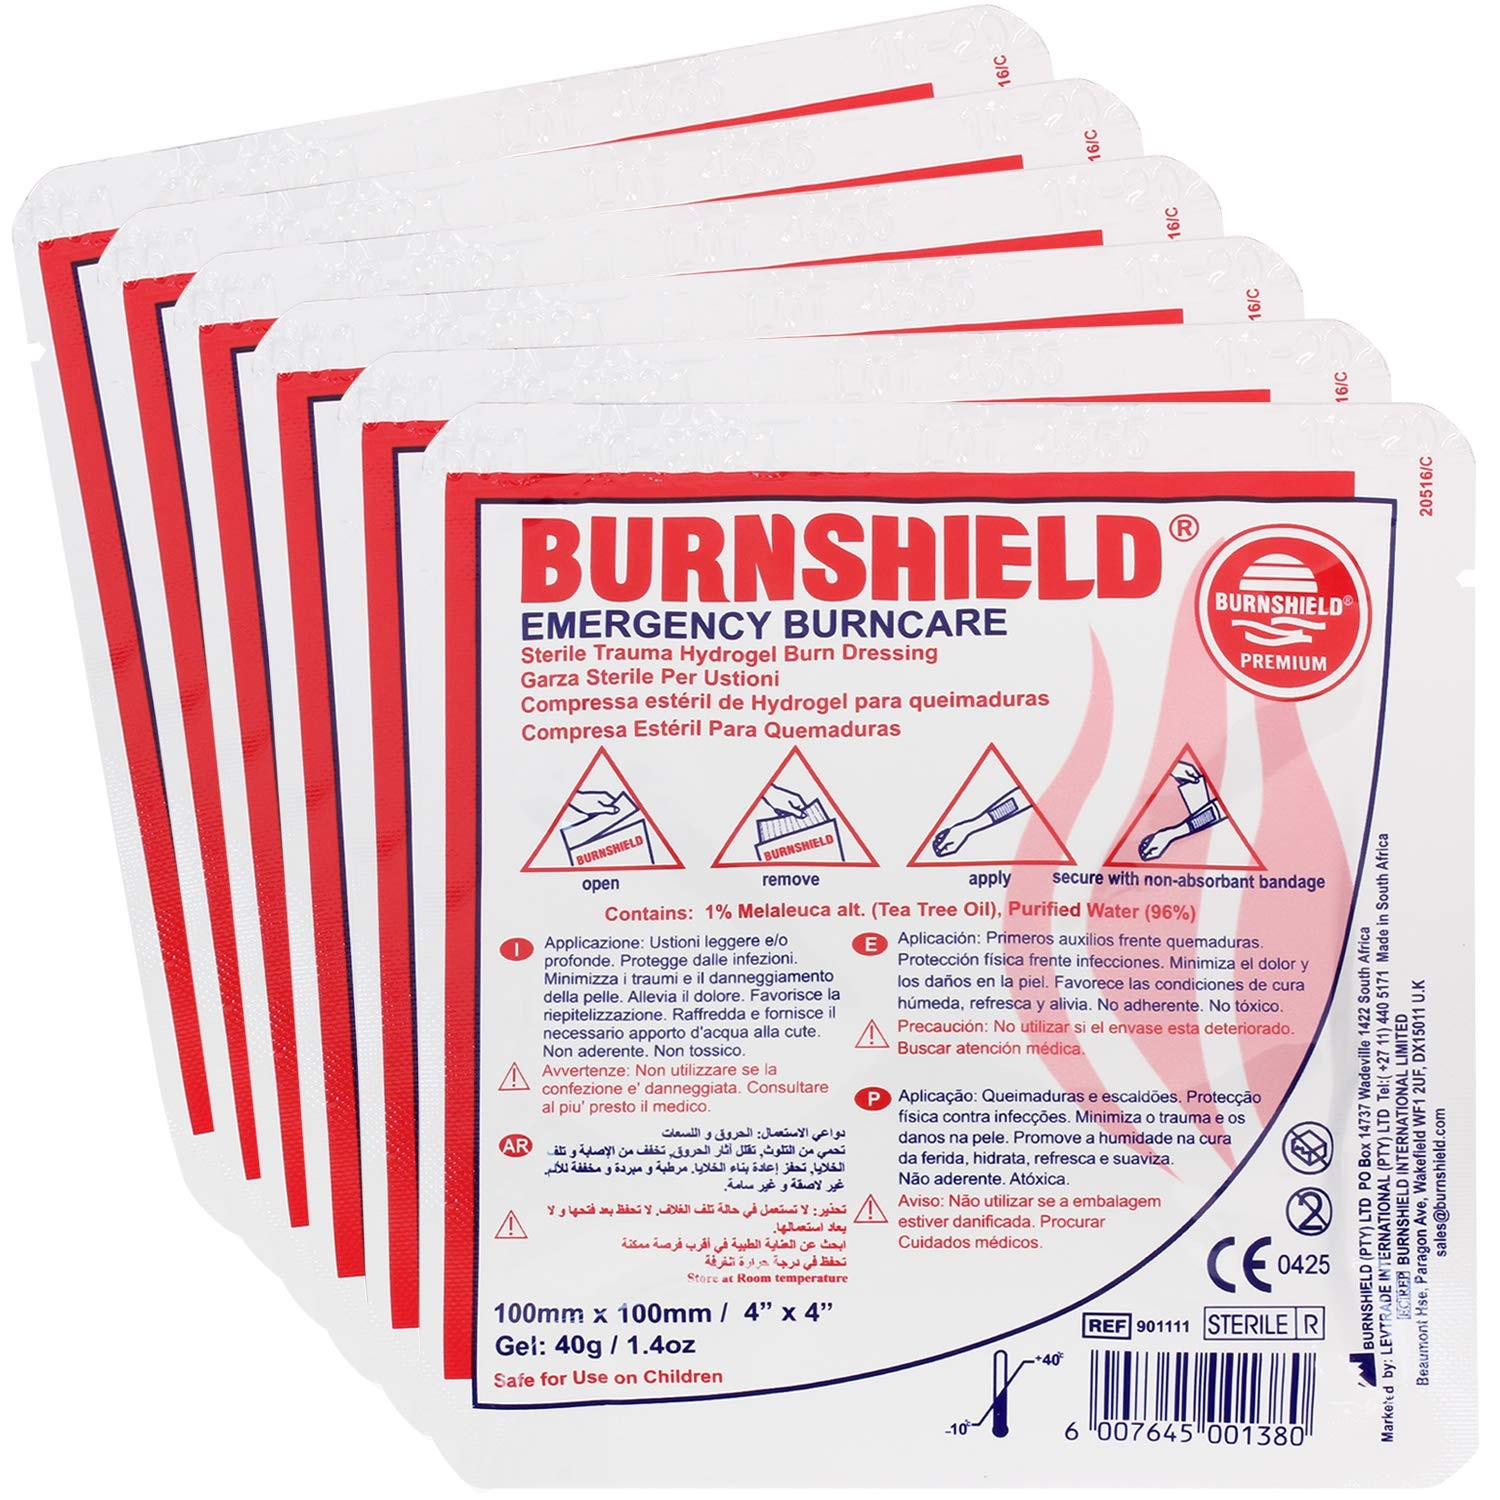 Burnshield Dressing 10 x 10 refill